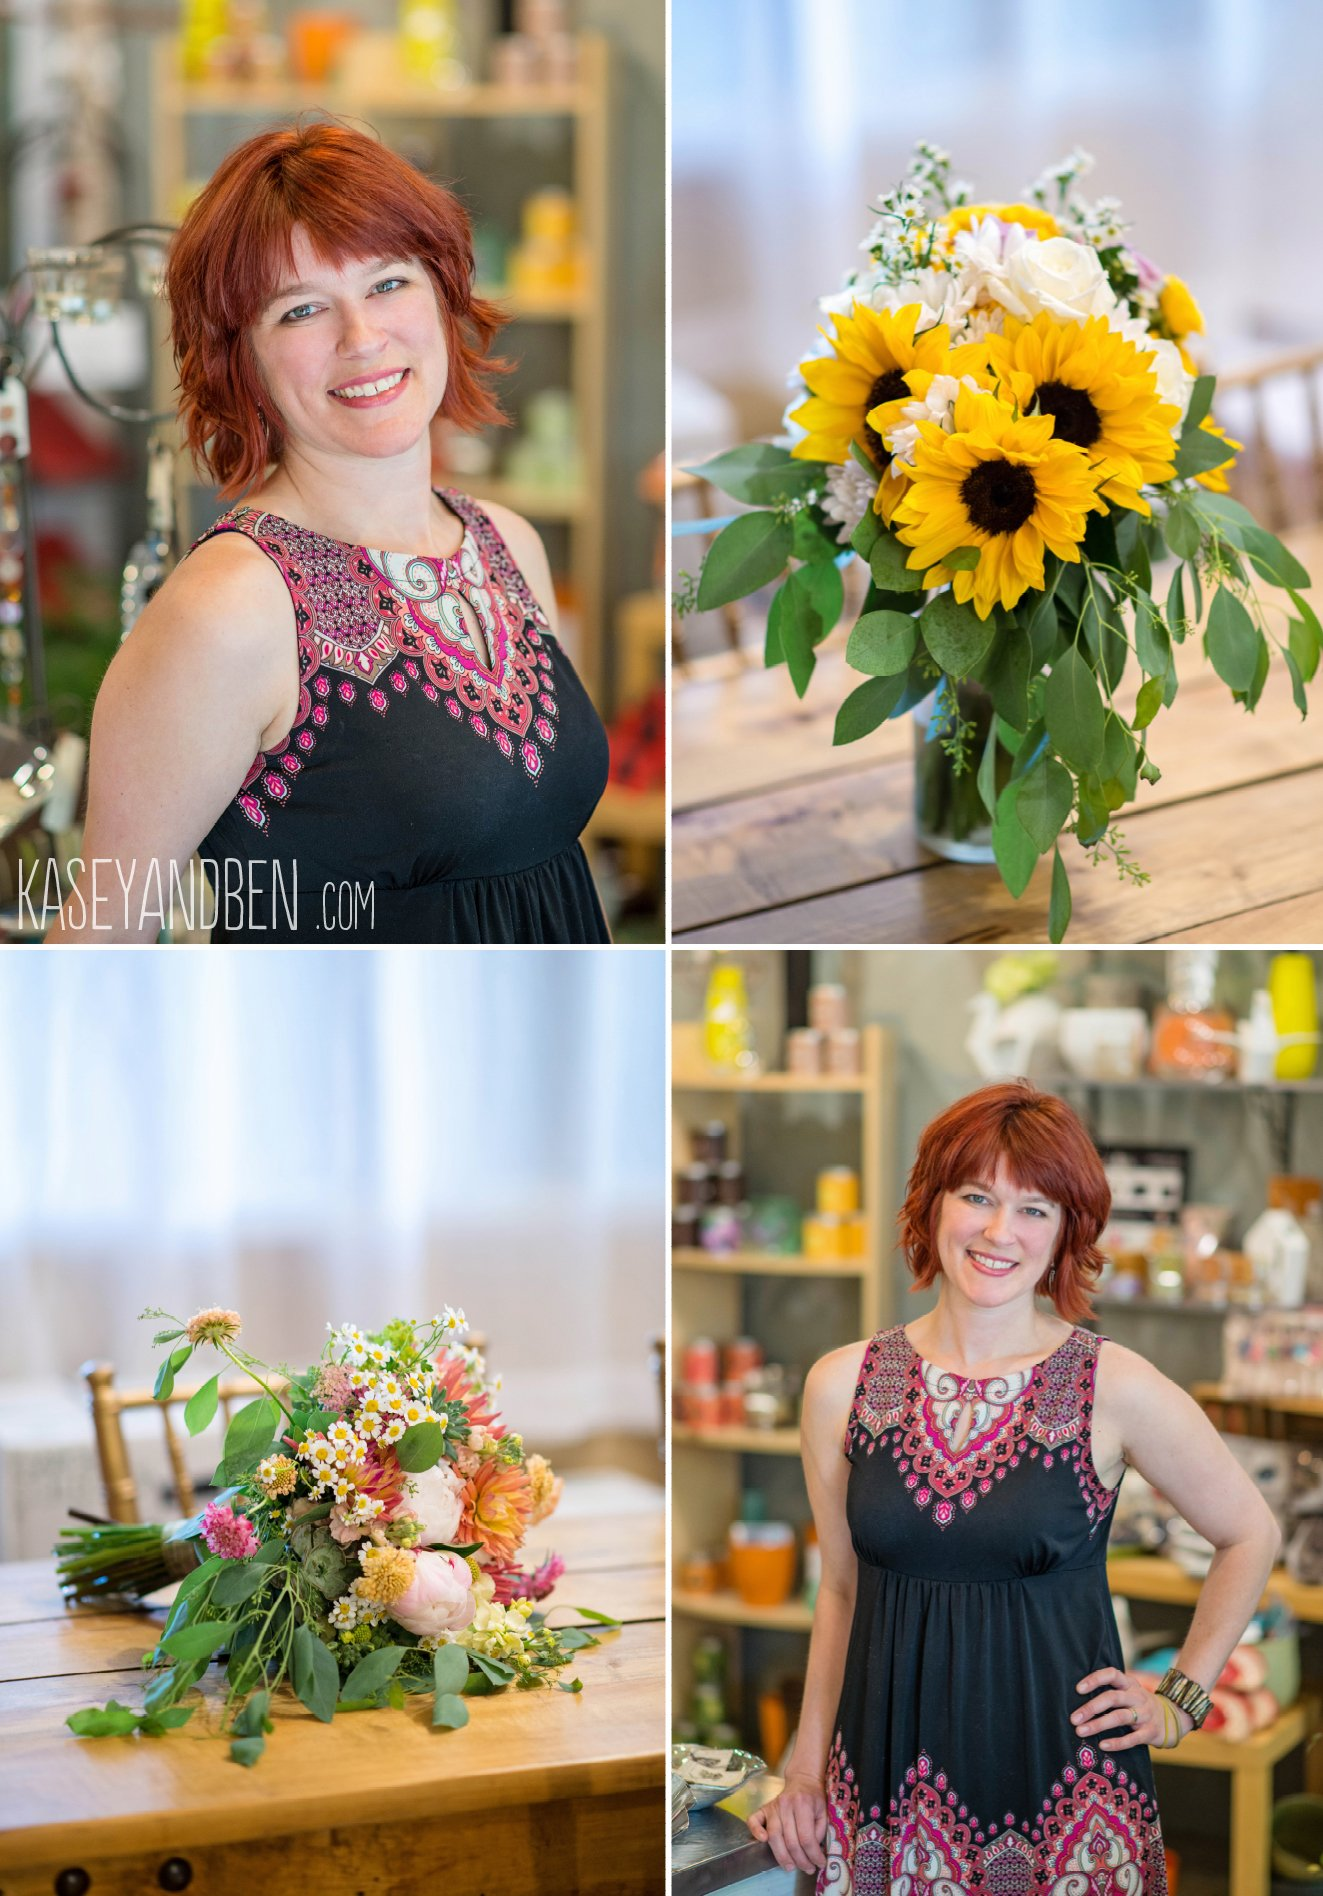 Green-Bay-Florist-Wisconsin-Photography-Petal-Pusher-Business-Branding-Flowers-Wedding-Advice